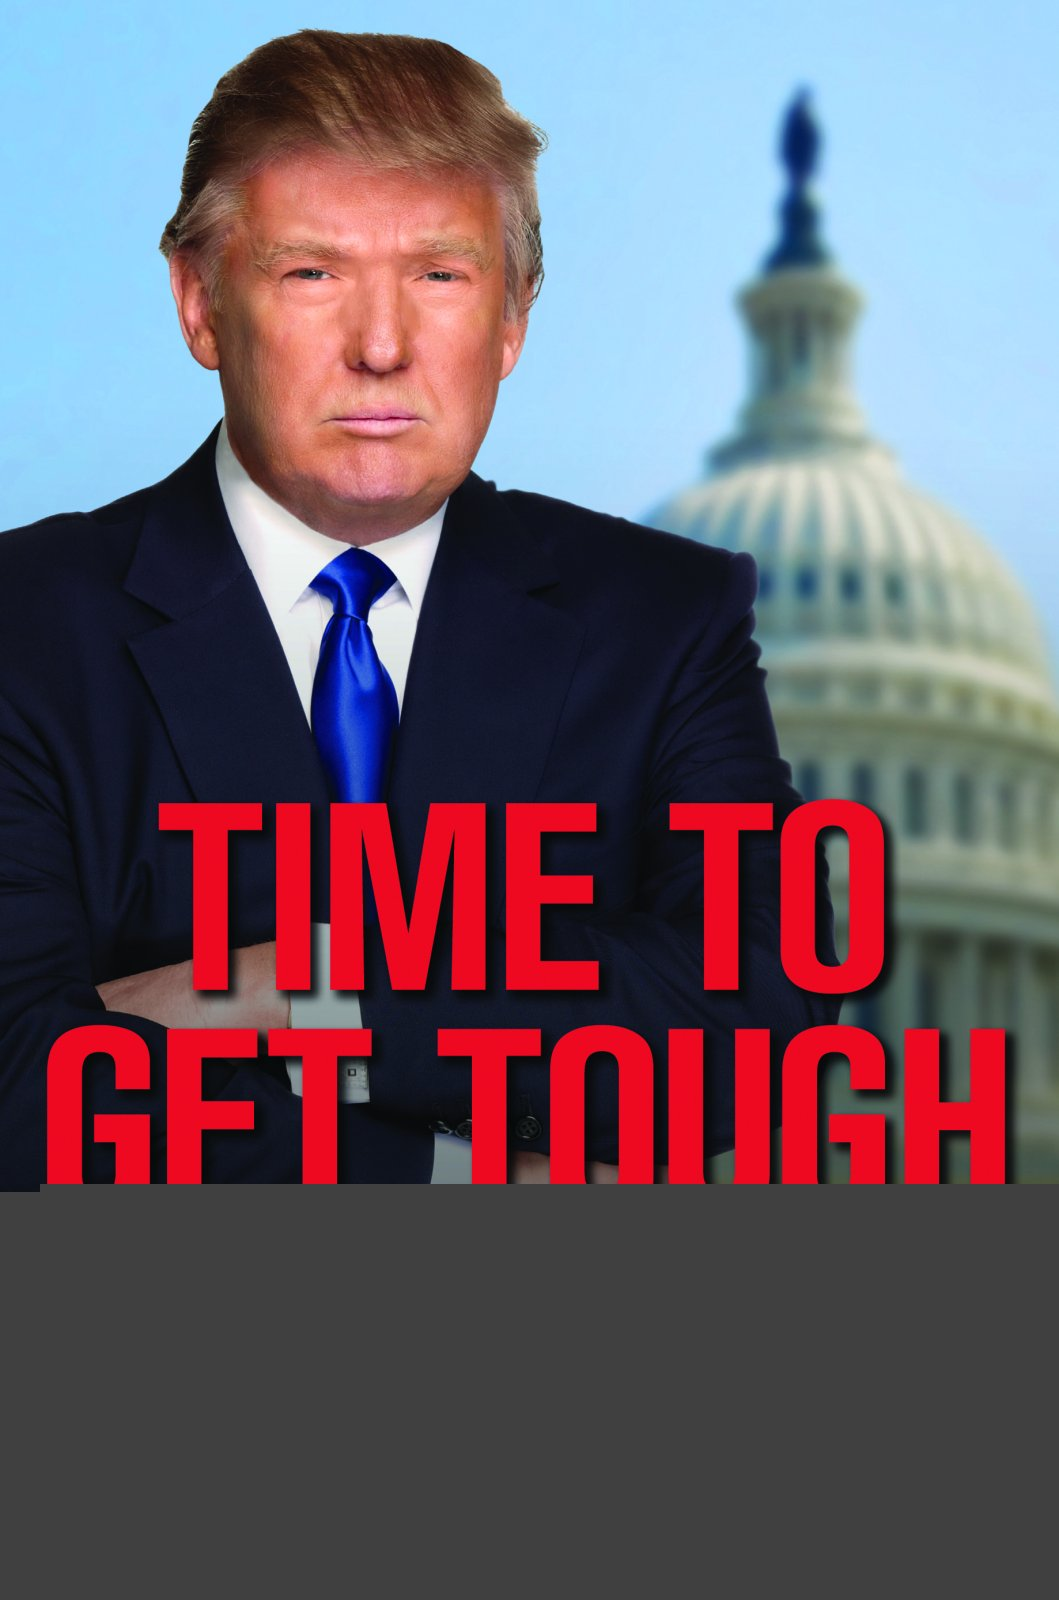 Time Get Tough America Great product image